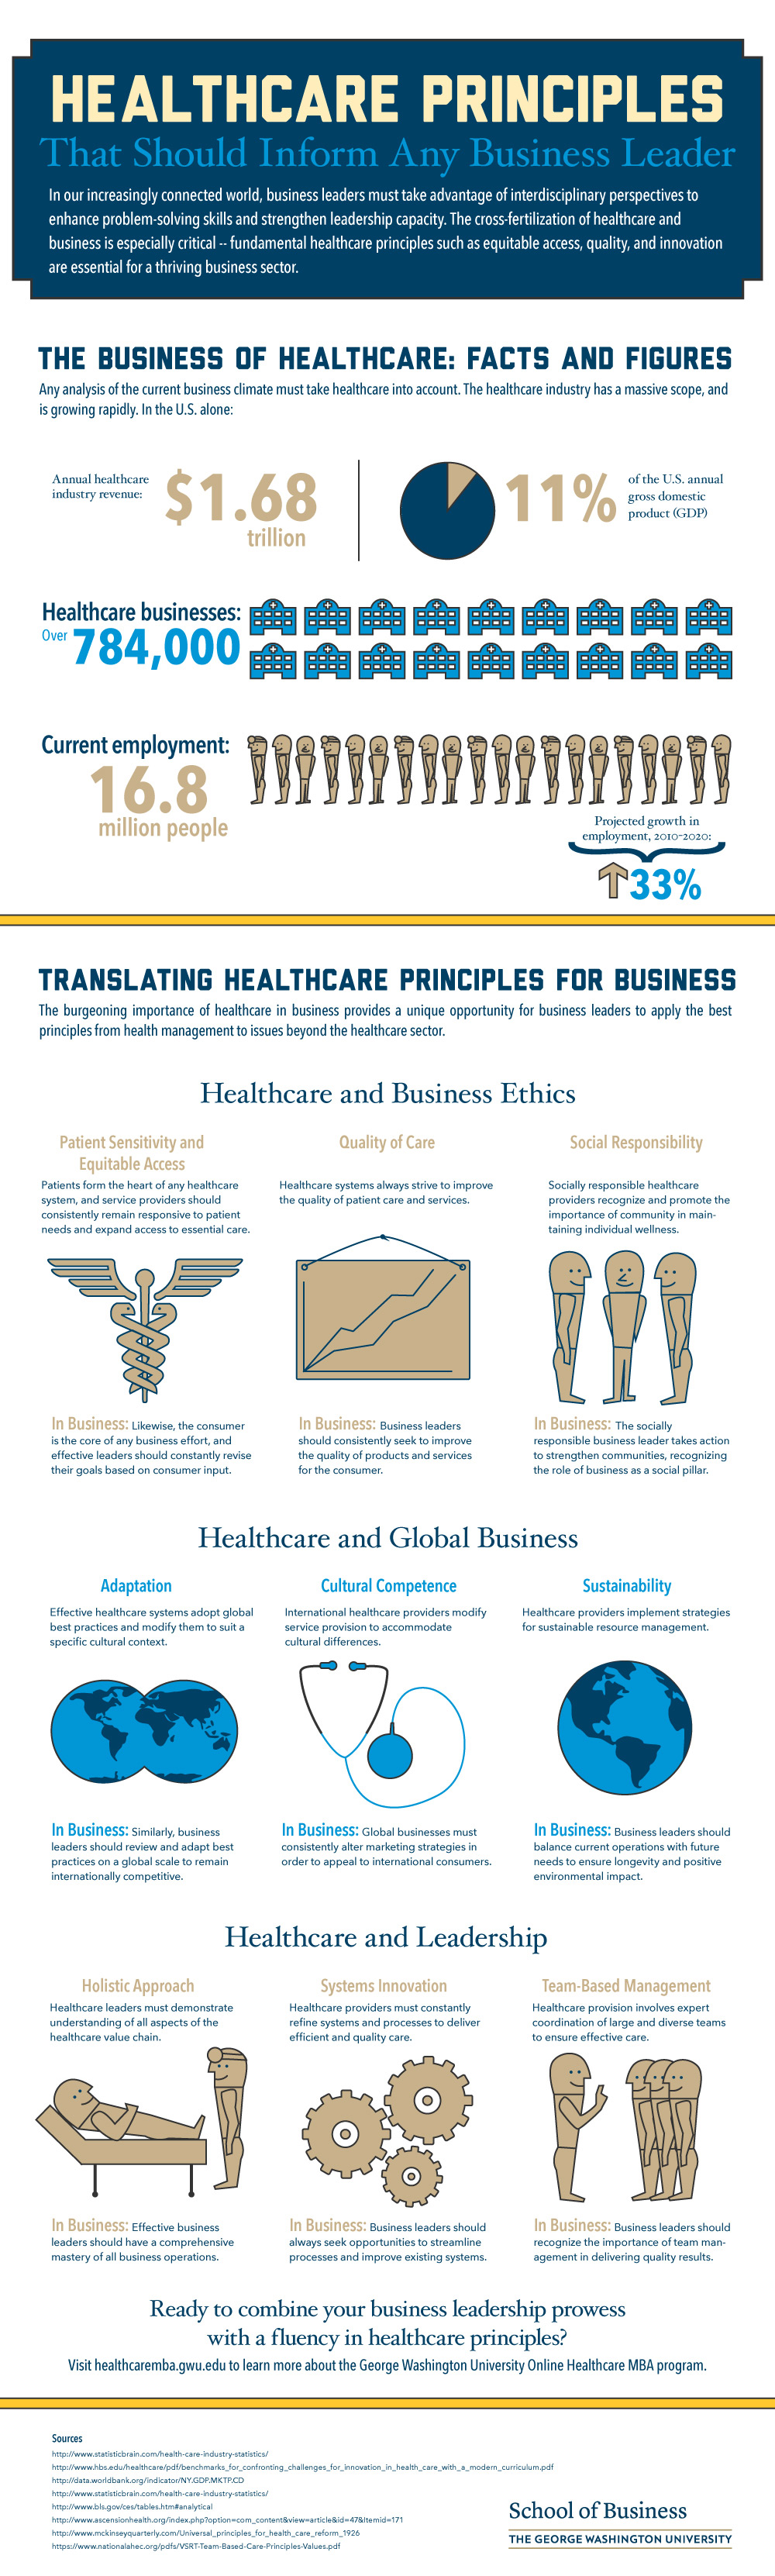 Healthcare Principles That Should Inform Any Business Leader